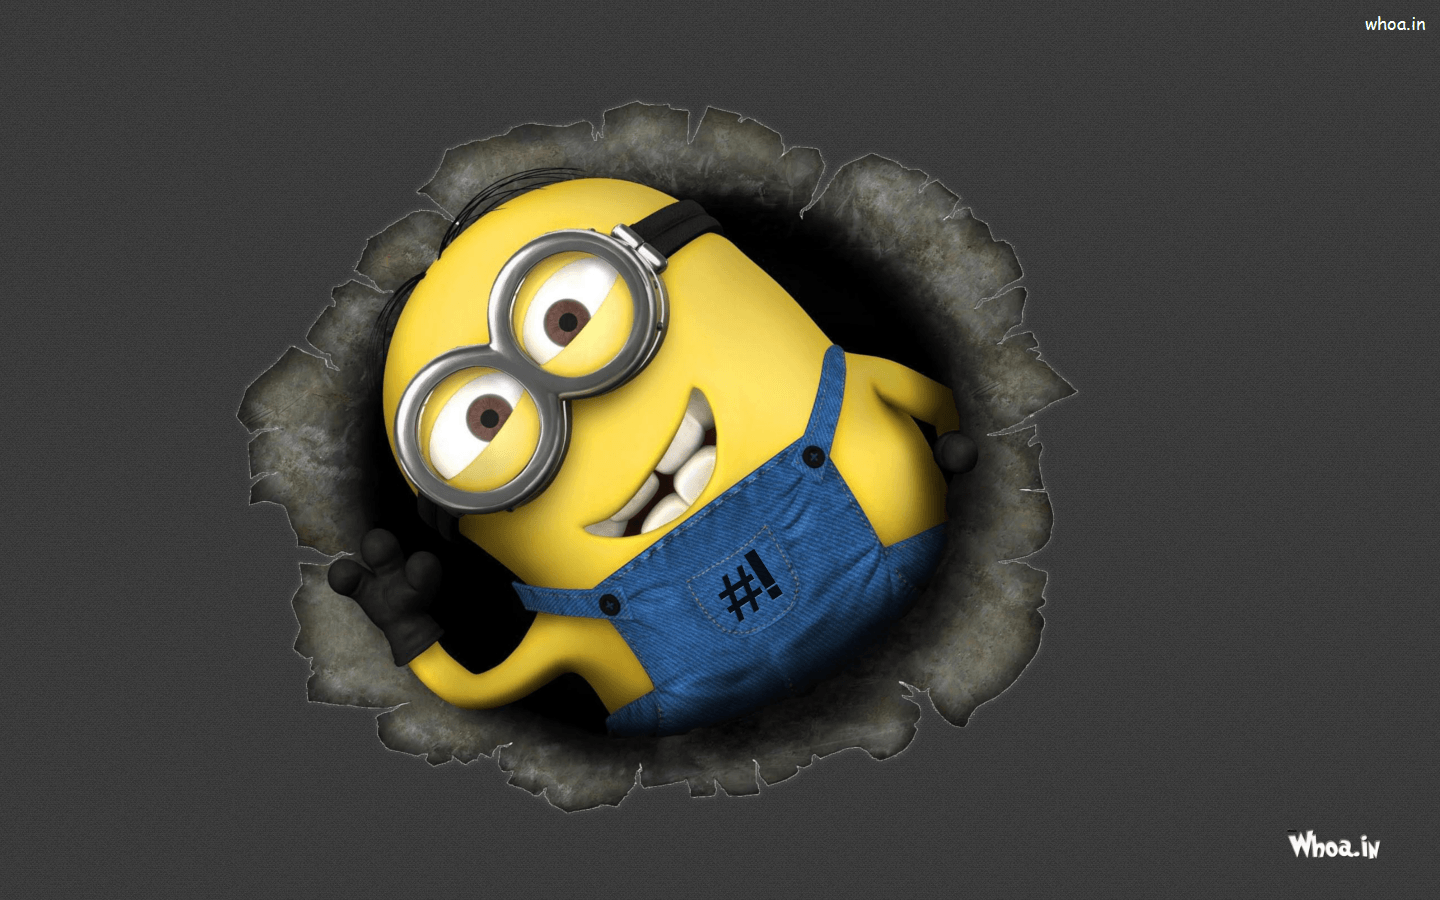 Banana Minion Wallpaper High Quality Resolution Minions Wallpaper Cute Wallpapers For Ipad Background Hd Wallpaper If you have your own one, just send us the image and we will show. banana minion wallpaper high quality